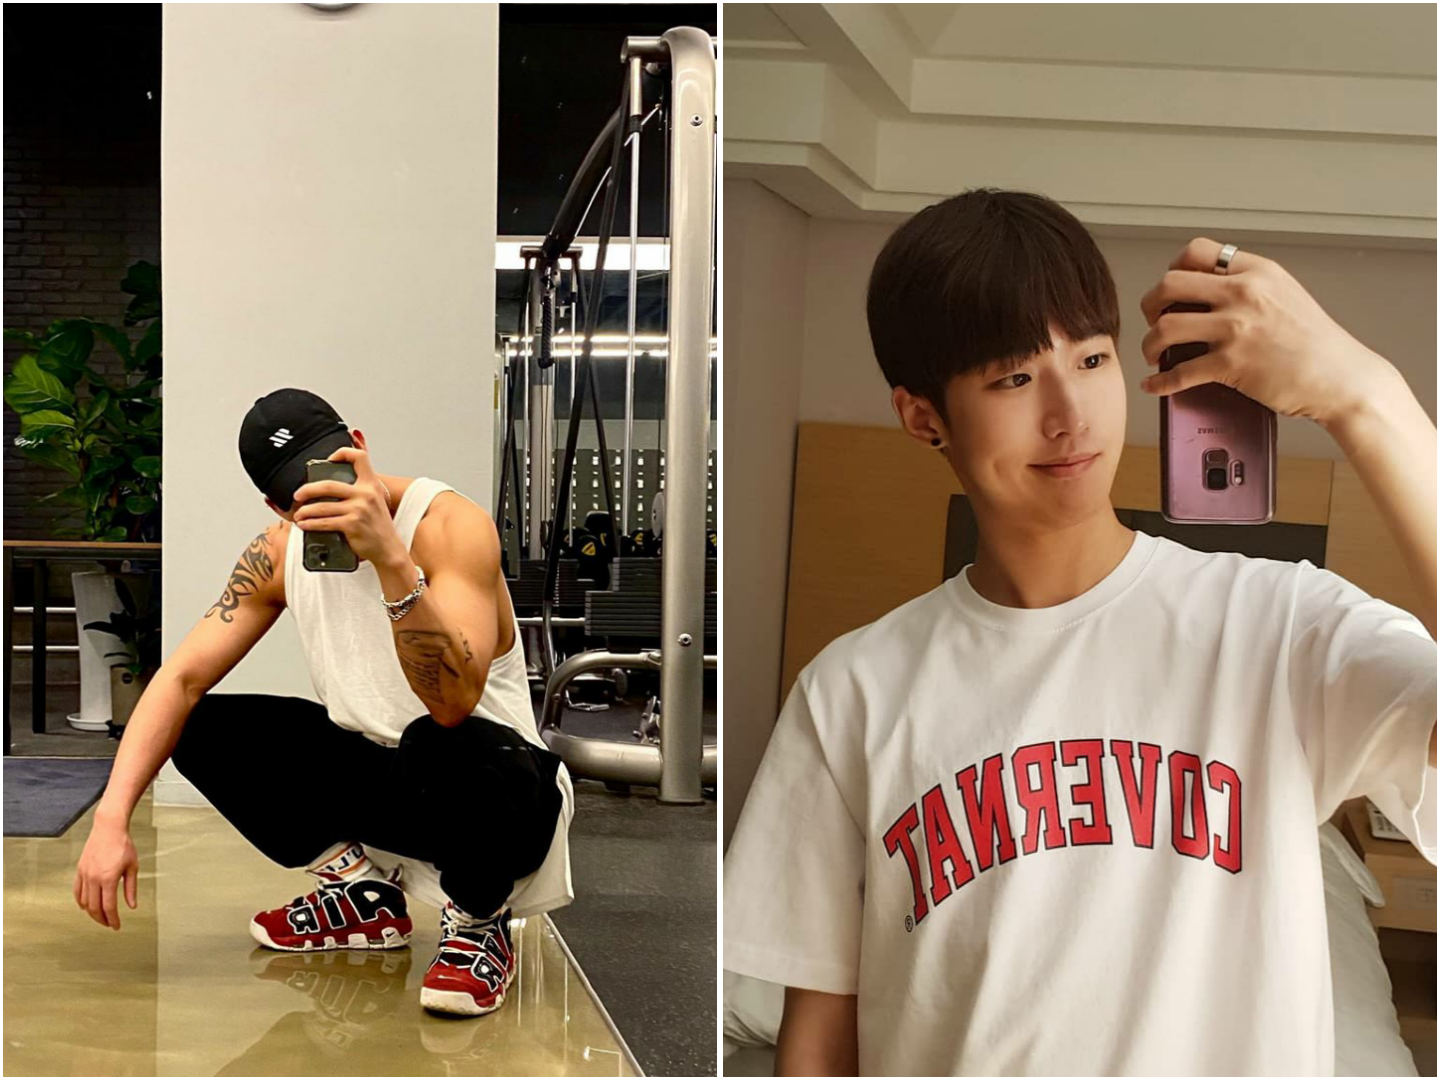 Photo Poses For Men - Mirror selfies with upside down phone